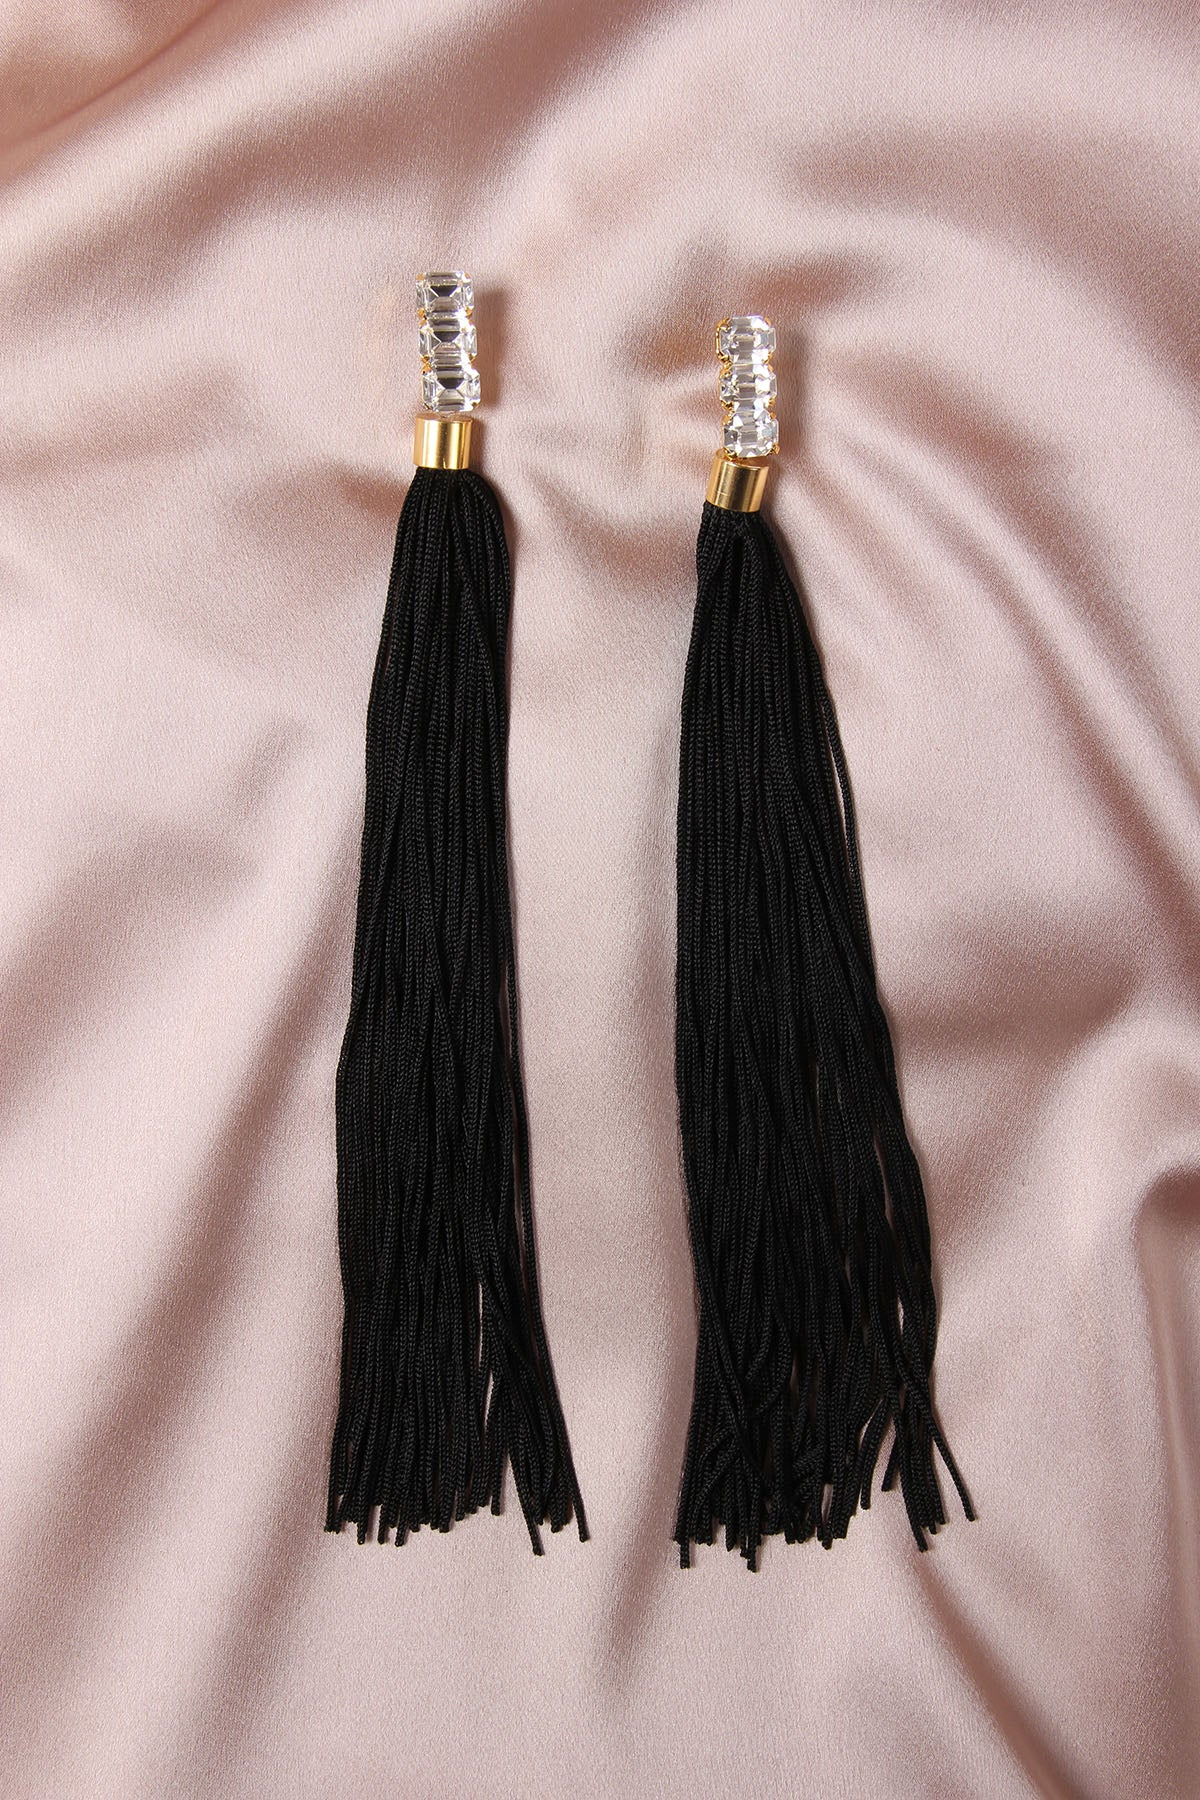 THE WEEPING SOIL BLACK EARRINGS